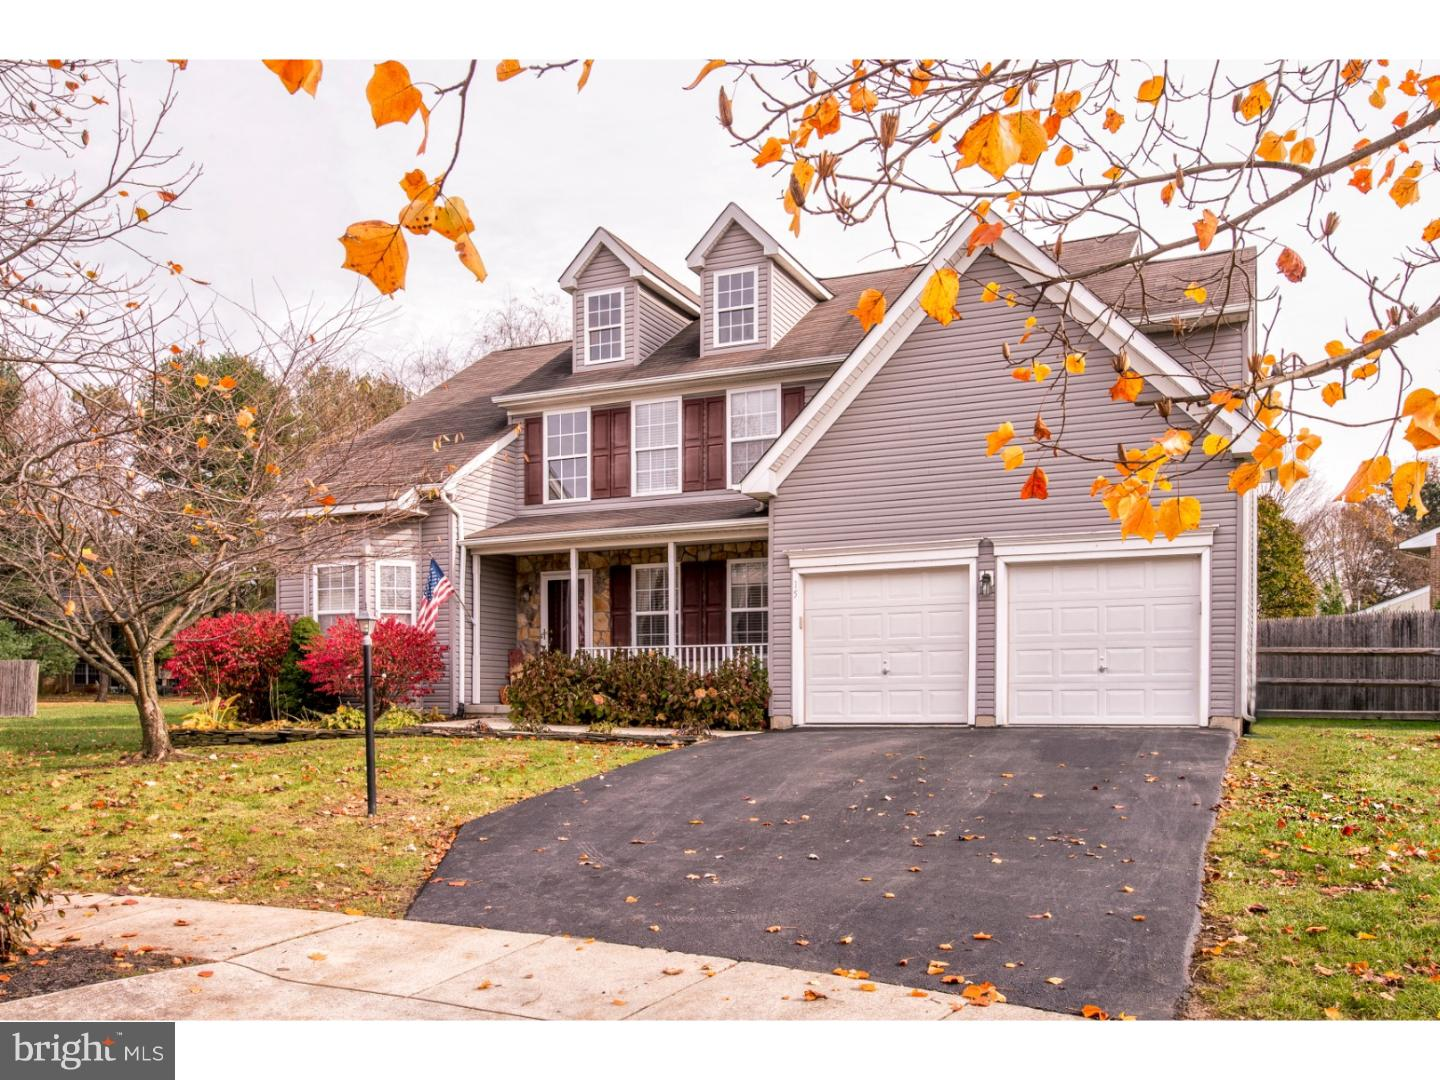 15 MARION DRIVE, THORNDALE, PA 19372